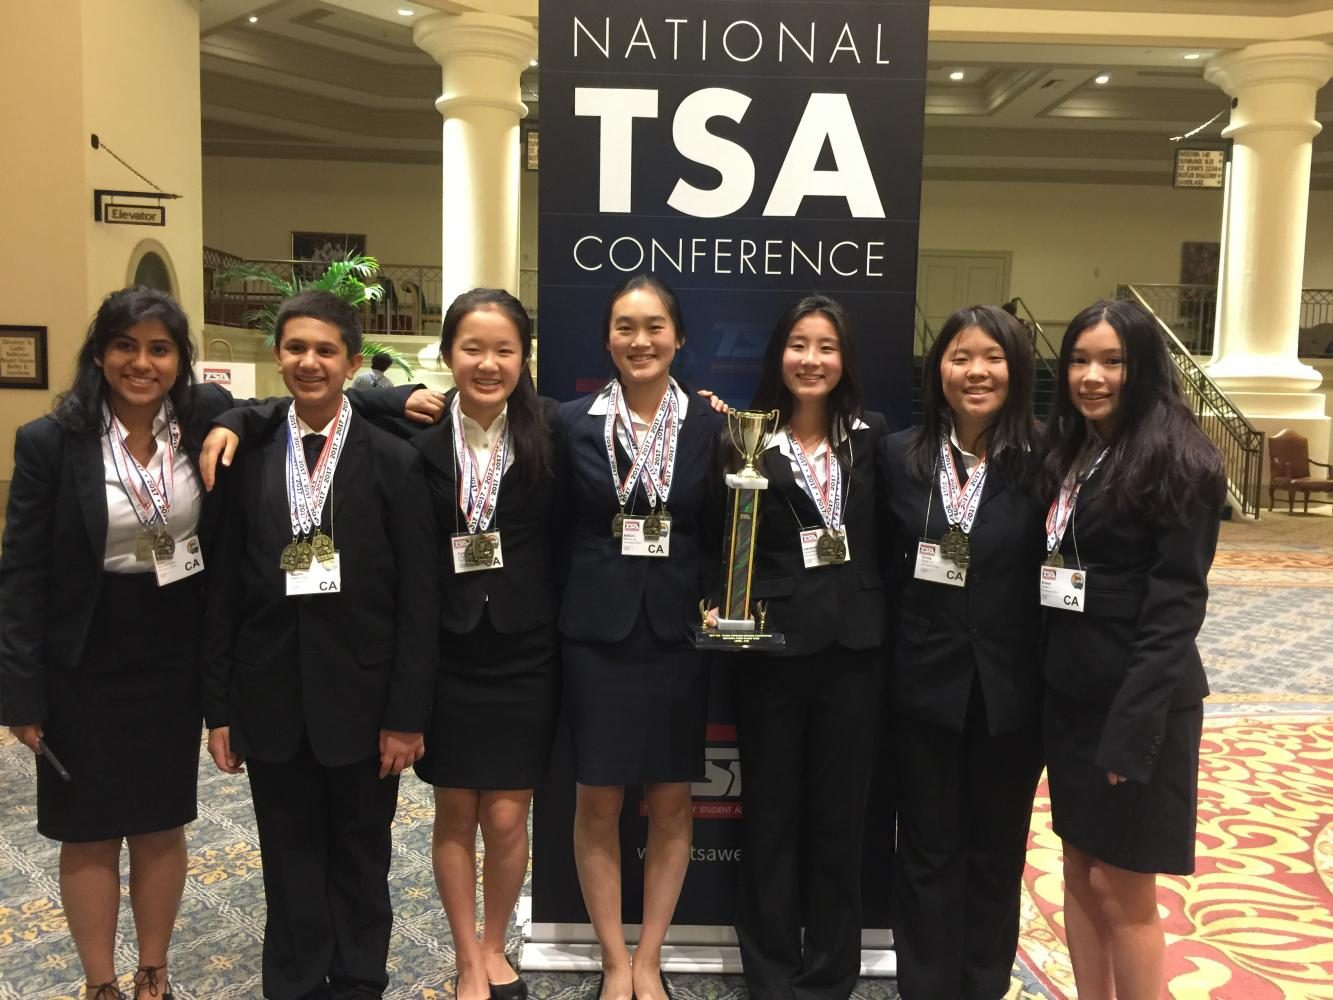 Sophomores+Vani+Mohindra%2C+Sachin+Shah%2C+Cynthia+Chen%2C+Allison+Jia%2C+Jacqueline+%22Jackie%22+Yang%2C+Emily+Liu+and+Eileen+Li+pose+with+their+trophy.